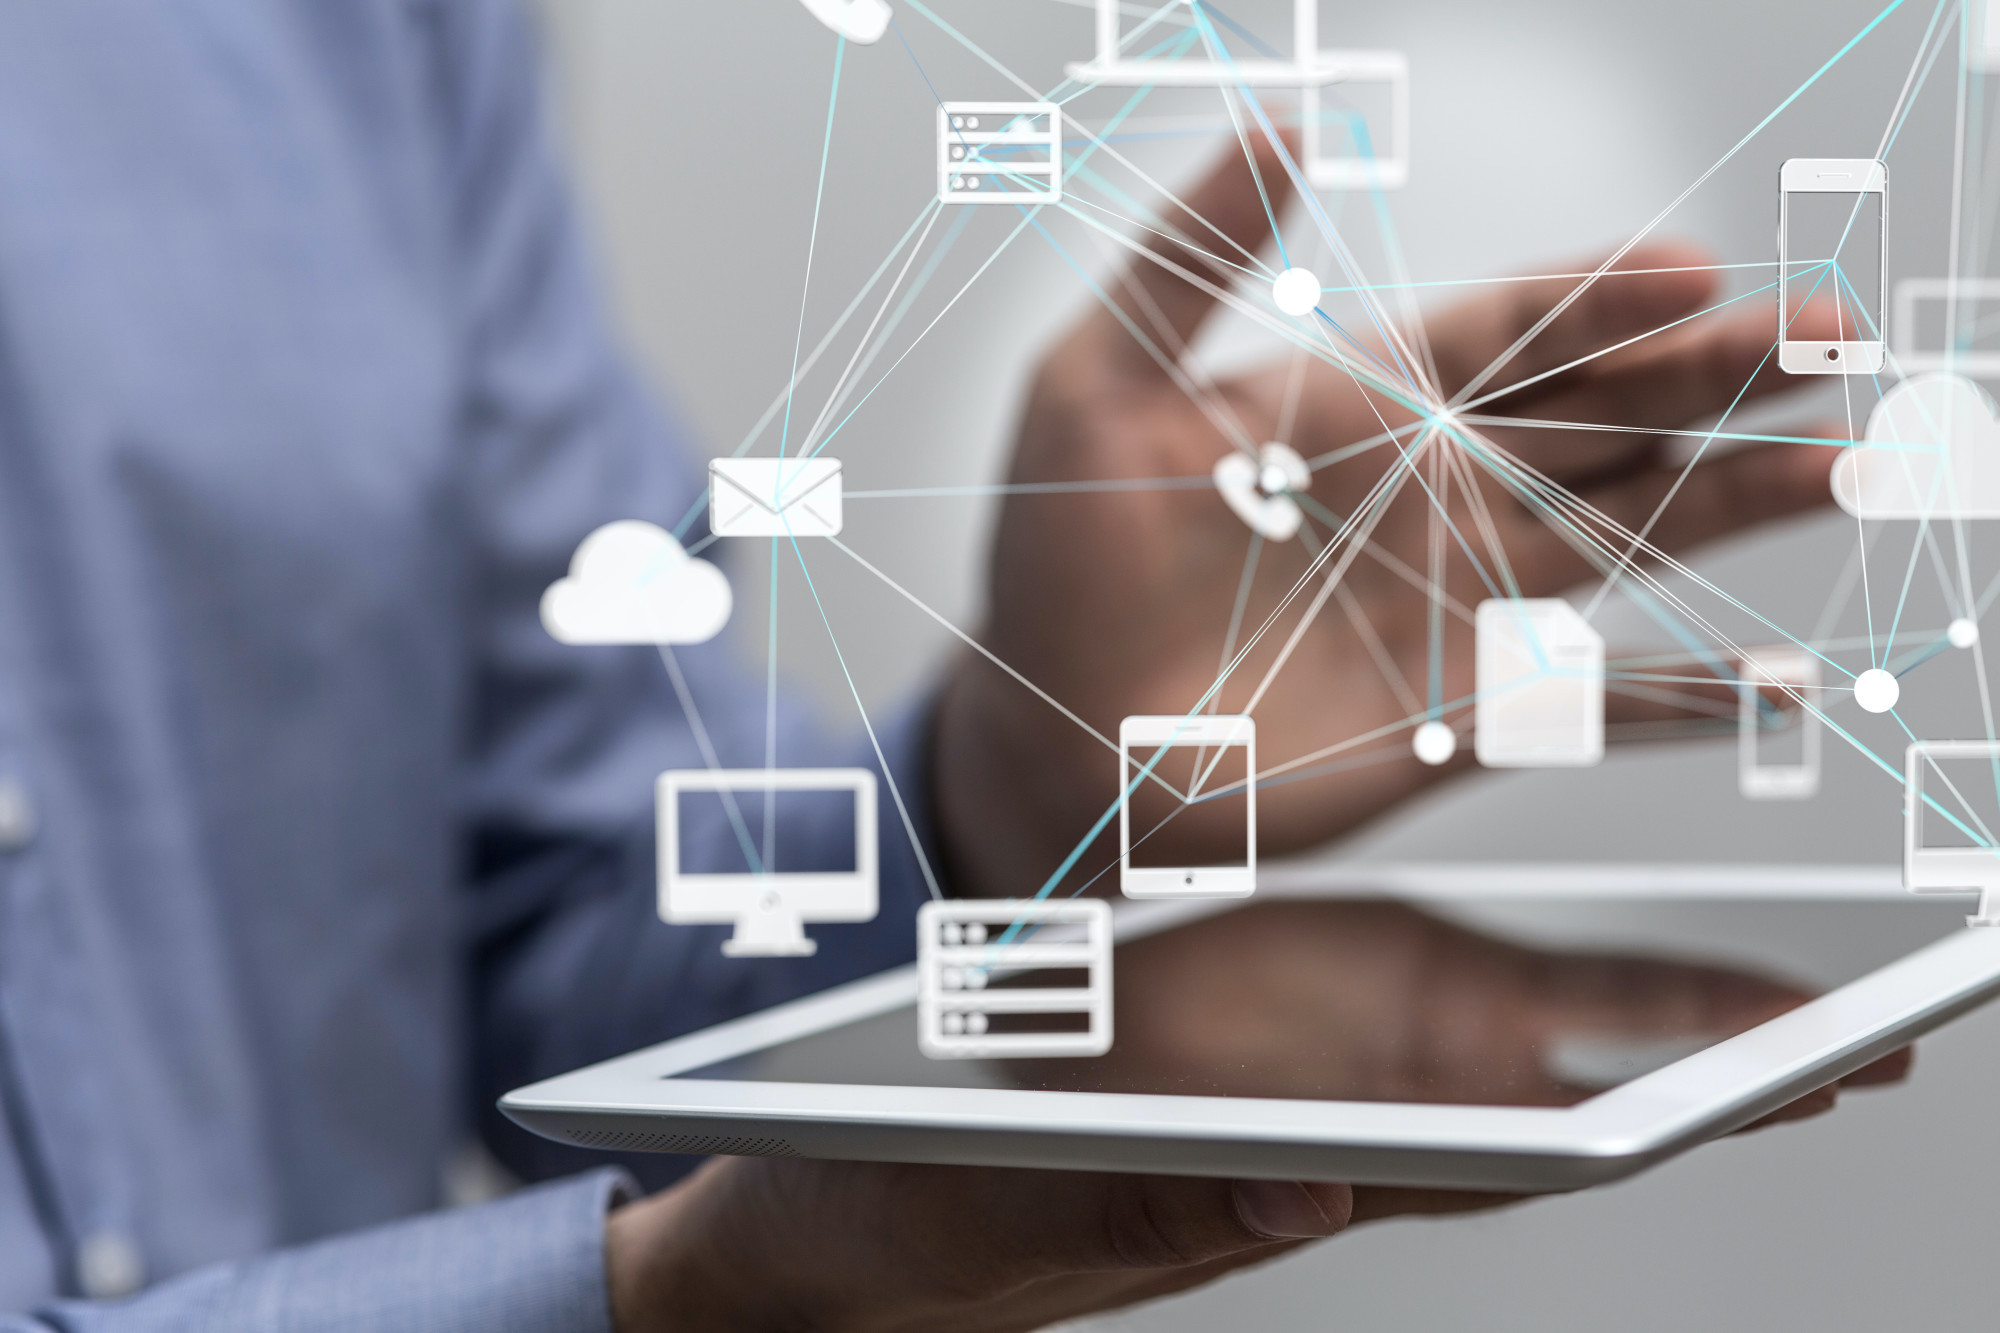 In-House vs. Outsourcing IT Services: Which Is Better?